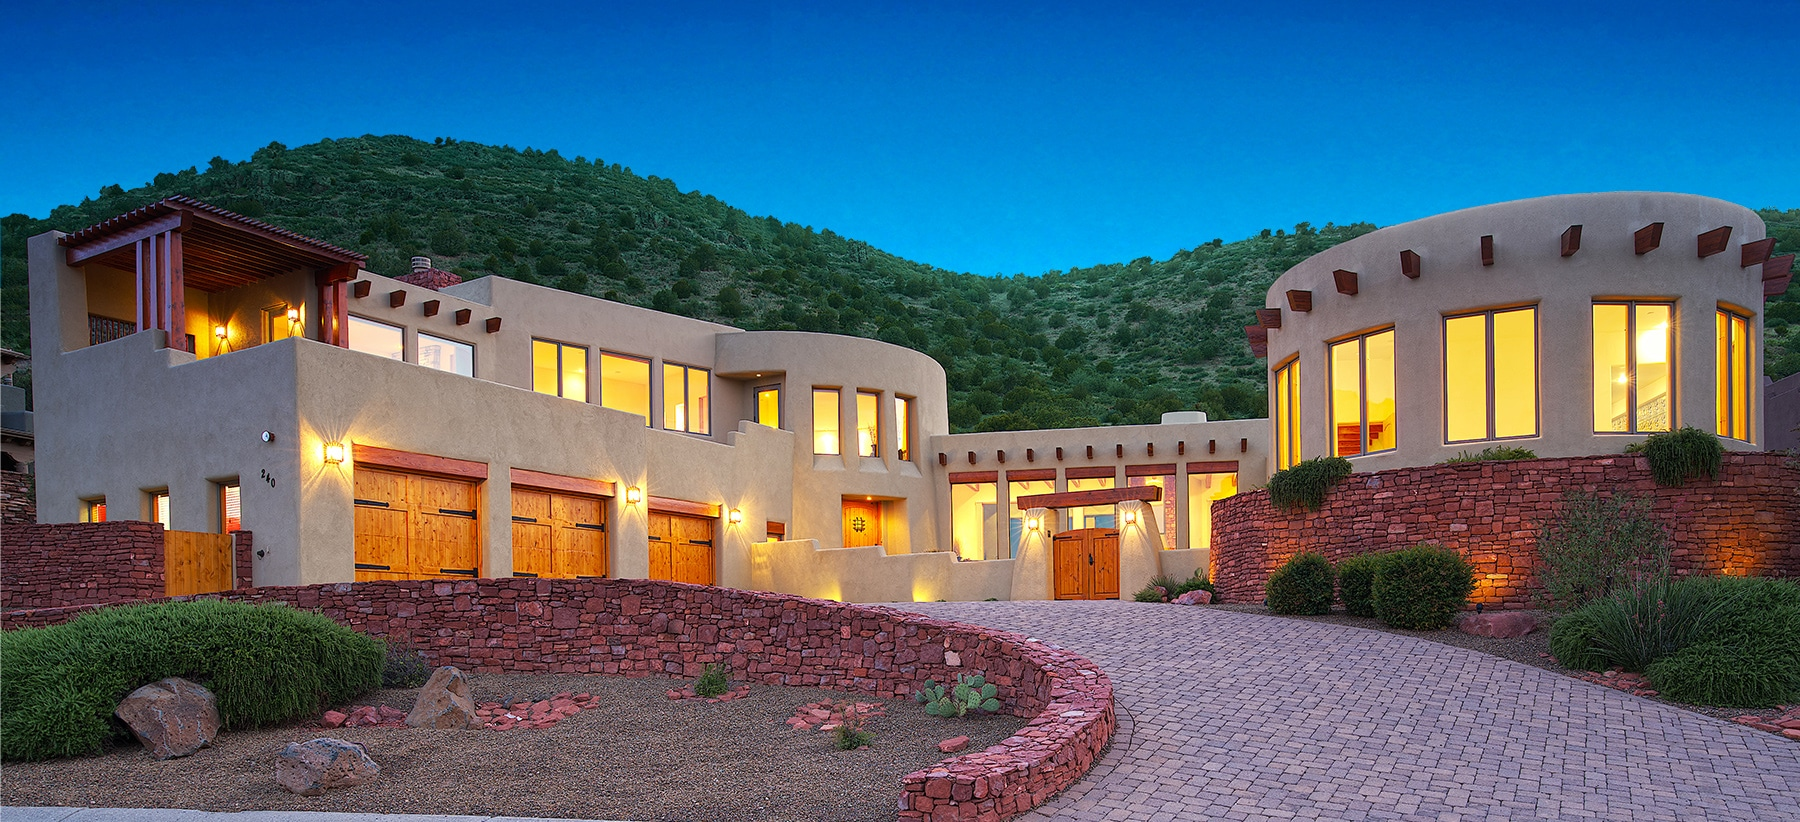 Beautiful Sedona, AZ Luxury Green Home, Amazing Red Rock Views, Backed to Natl Forest